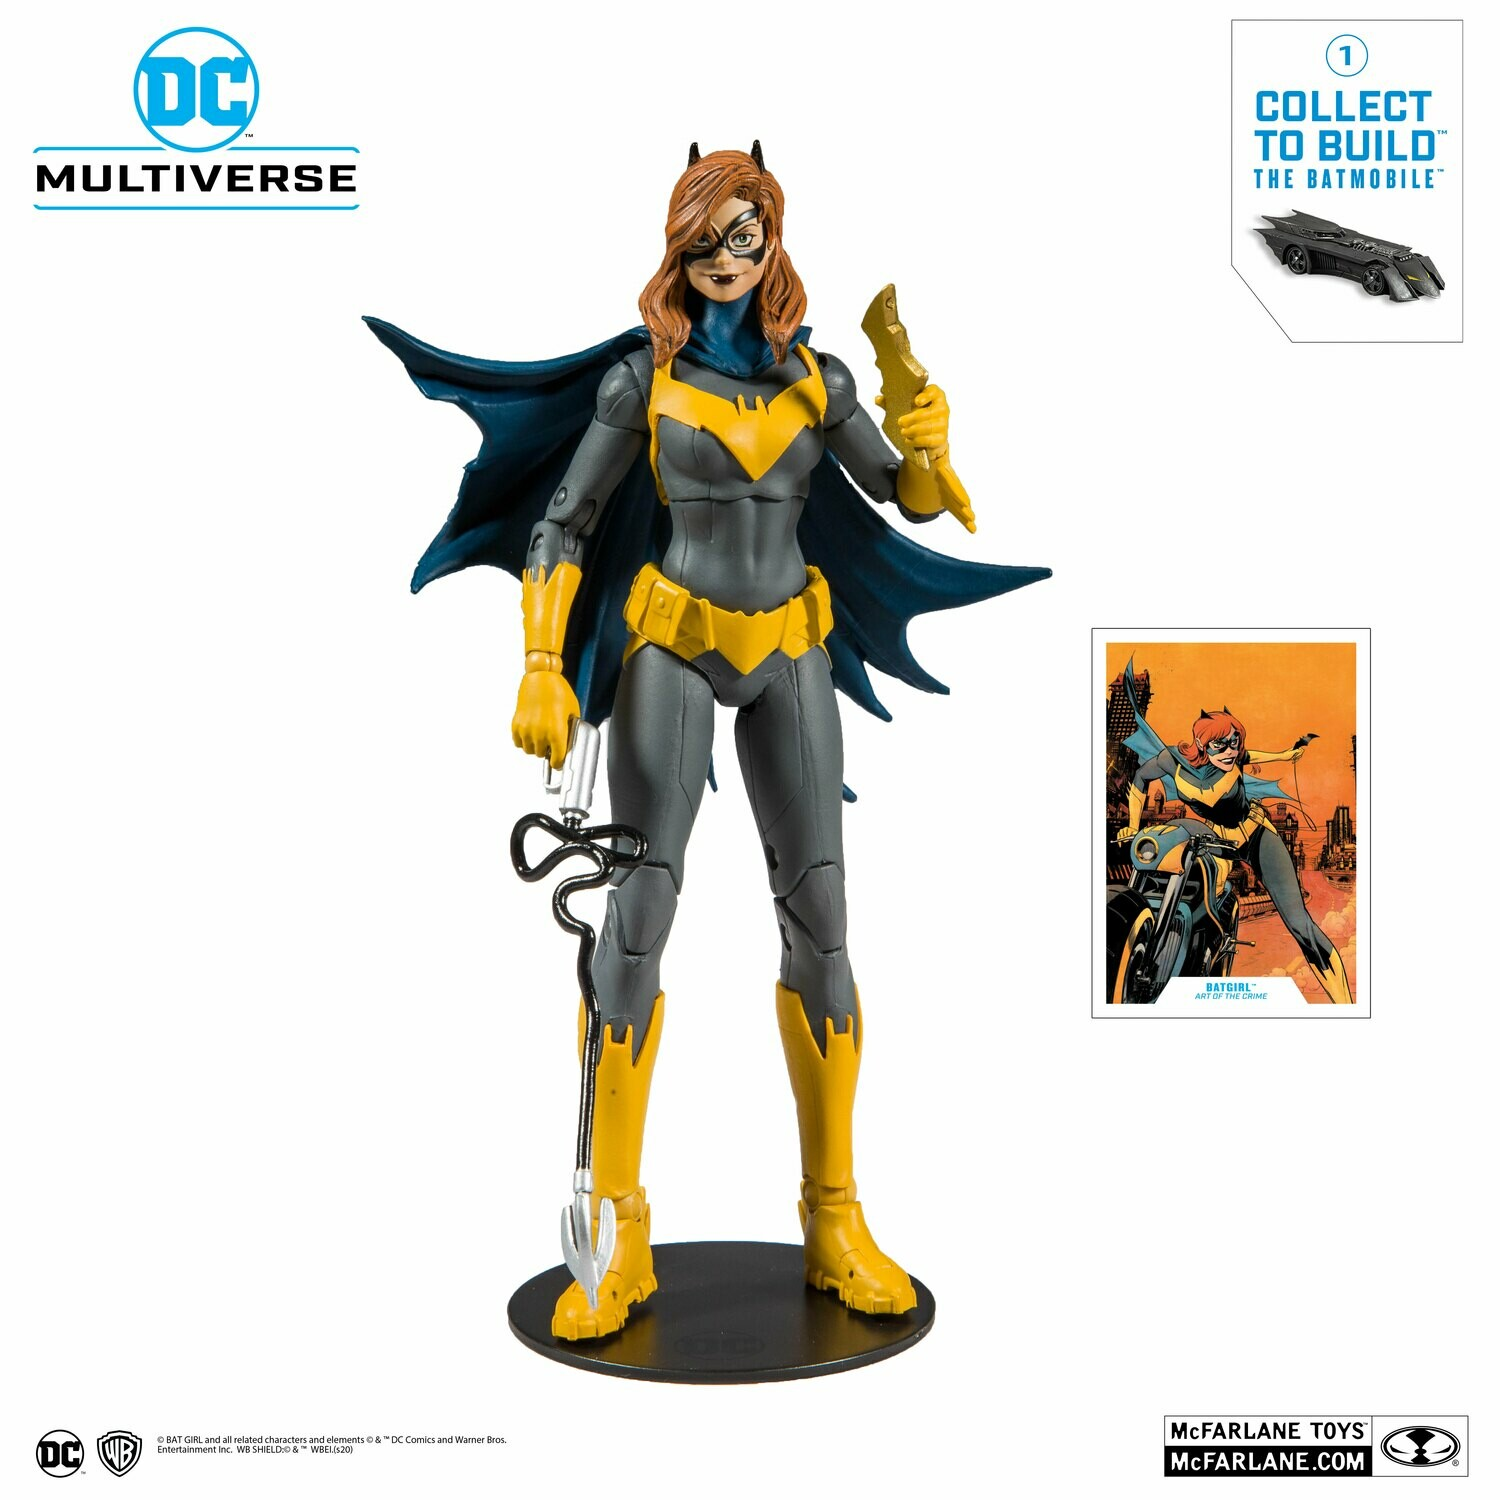 Mcfarlane DC Collector Wave 1 Batgirl Art of the Crime 7-Inch Action Figure